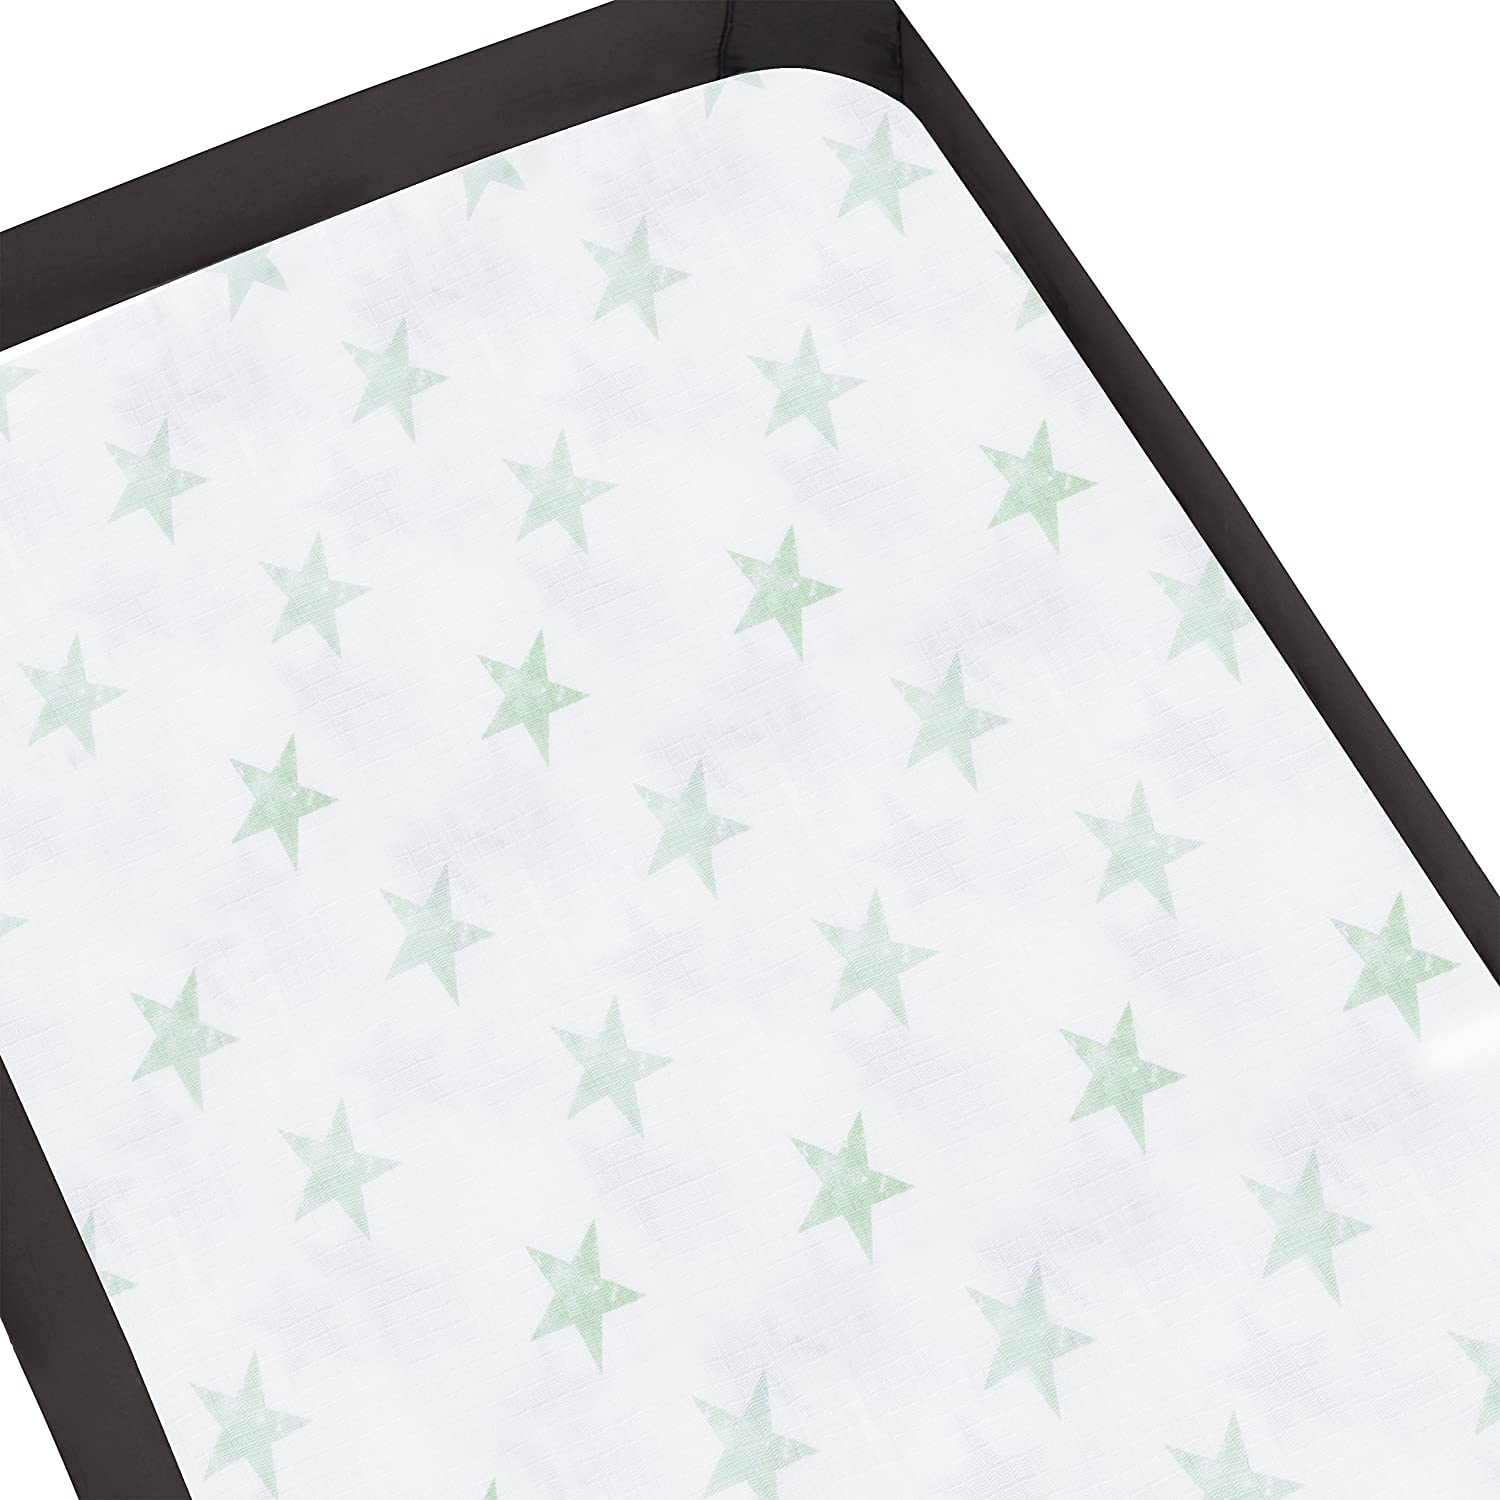 Aden by Aden + Anais Pack ' n Play Playard Crib Sheet, 100% Cotton Muslin, Super Soft, Breathable, Snug Fit Doll - Stars S3720